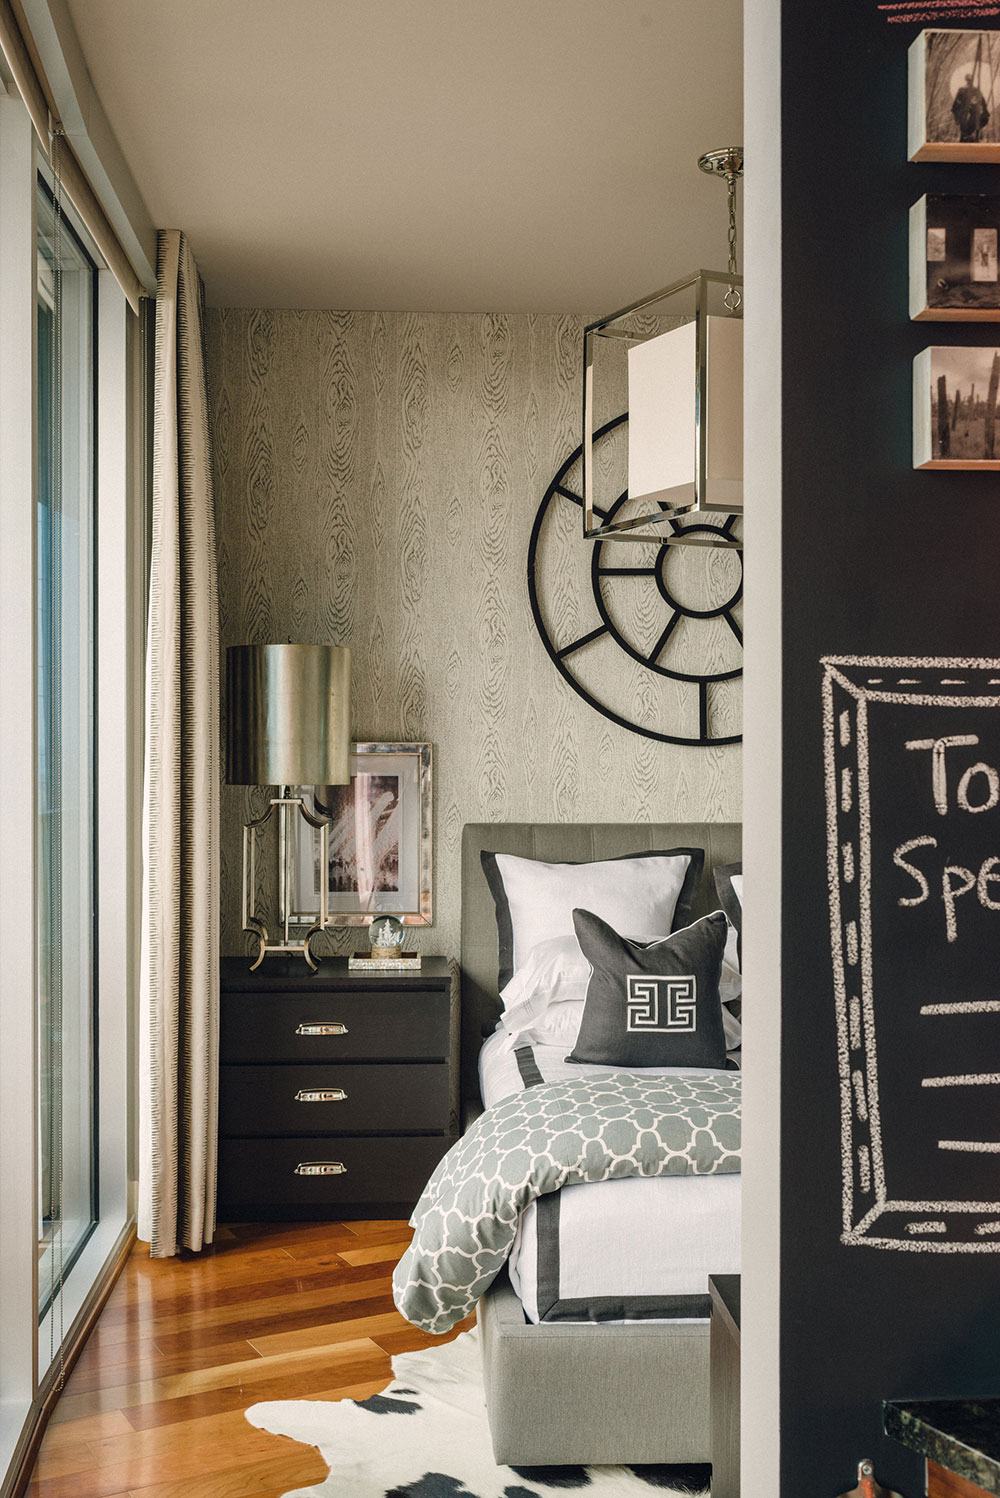 2 & 8 Decorating Mistakes to Avoid in a Studio Apartment   Real Simple